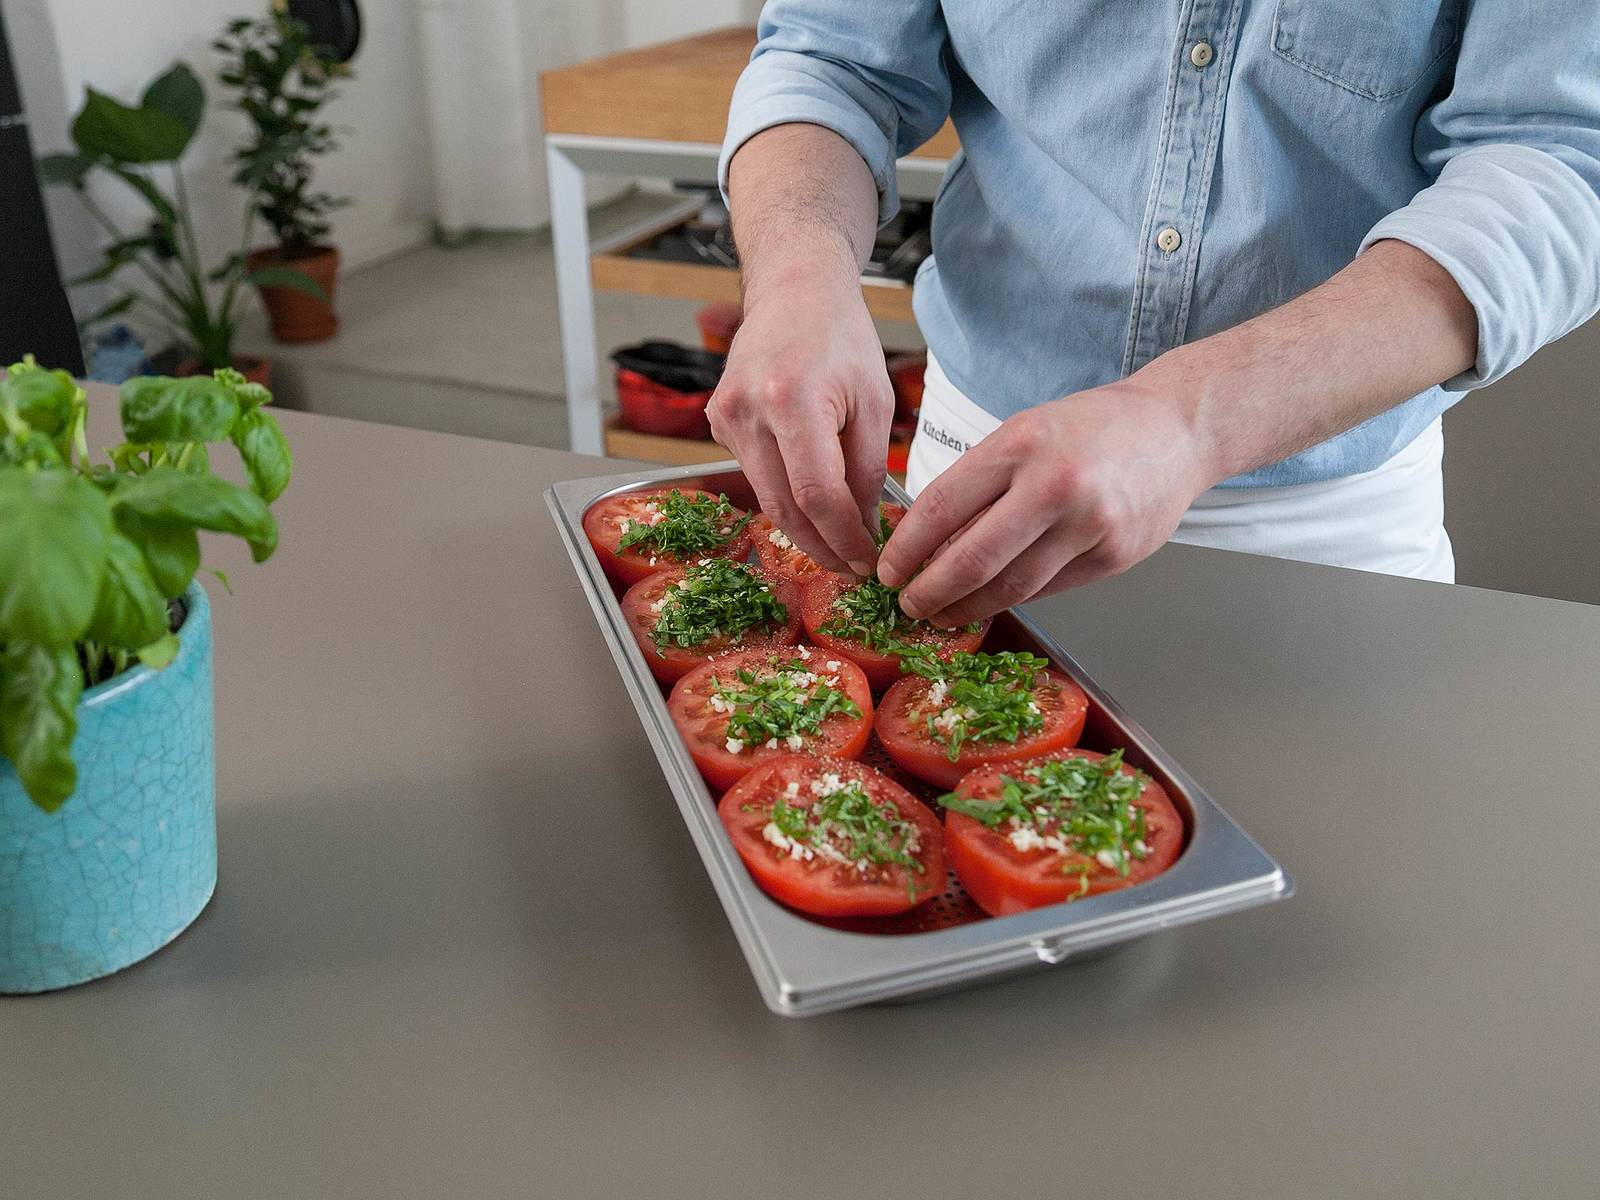 Place halved tomatoes in cooking container with cut side facing up. Top with chopped garlic, season with salt and pepper, and spread basil and feta cheese on top.